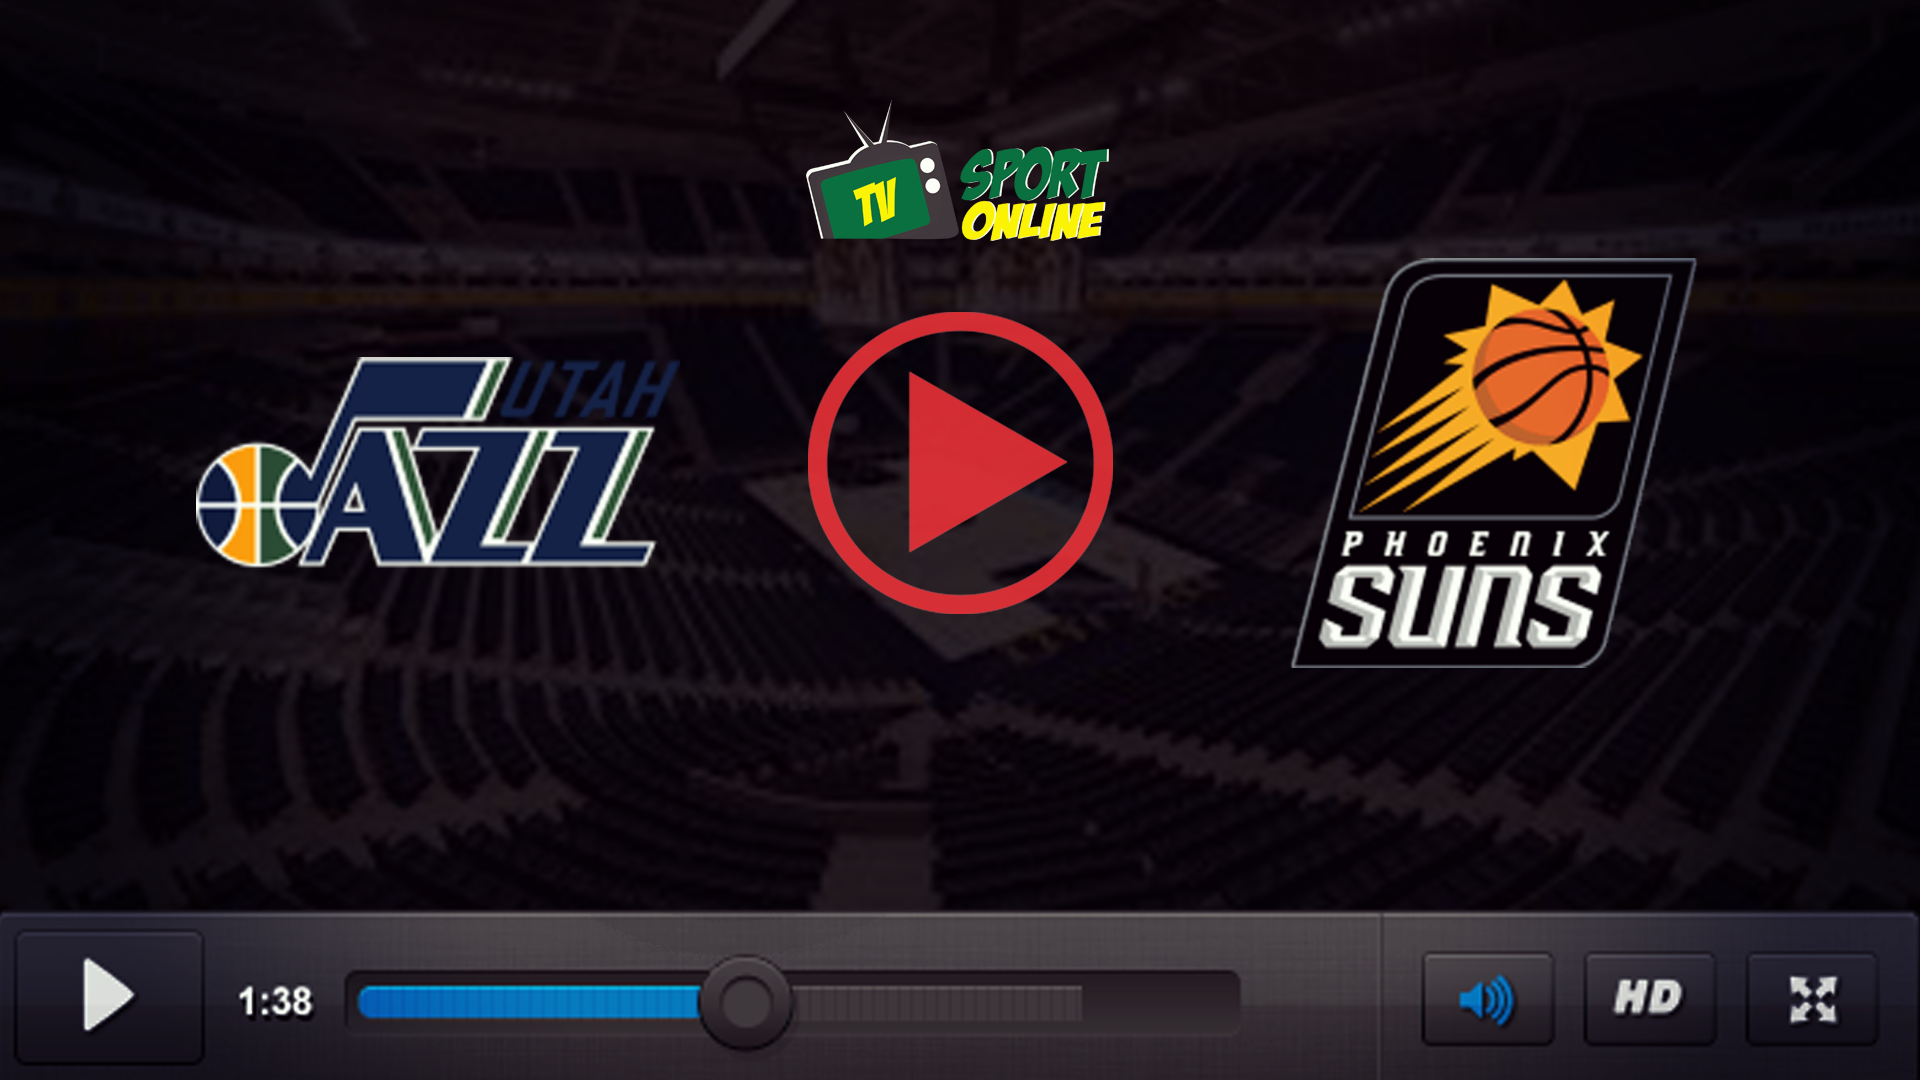 Watch Live Stream Utah Jazz – Phoenix Suns